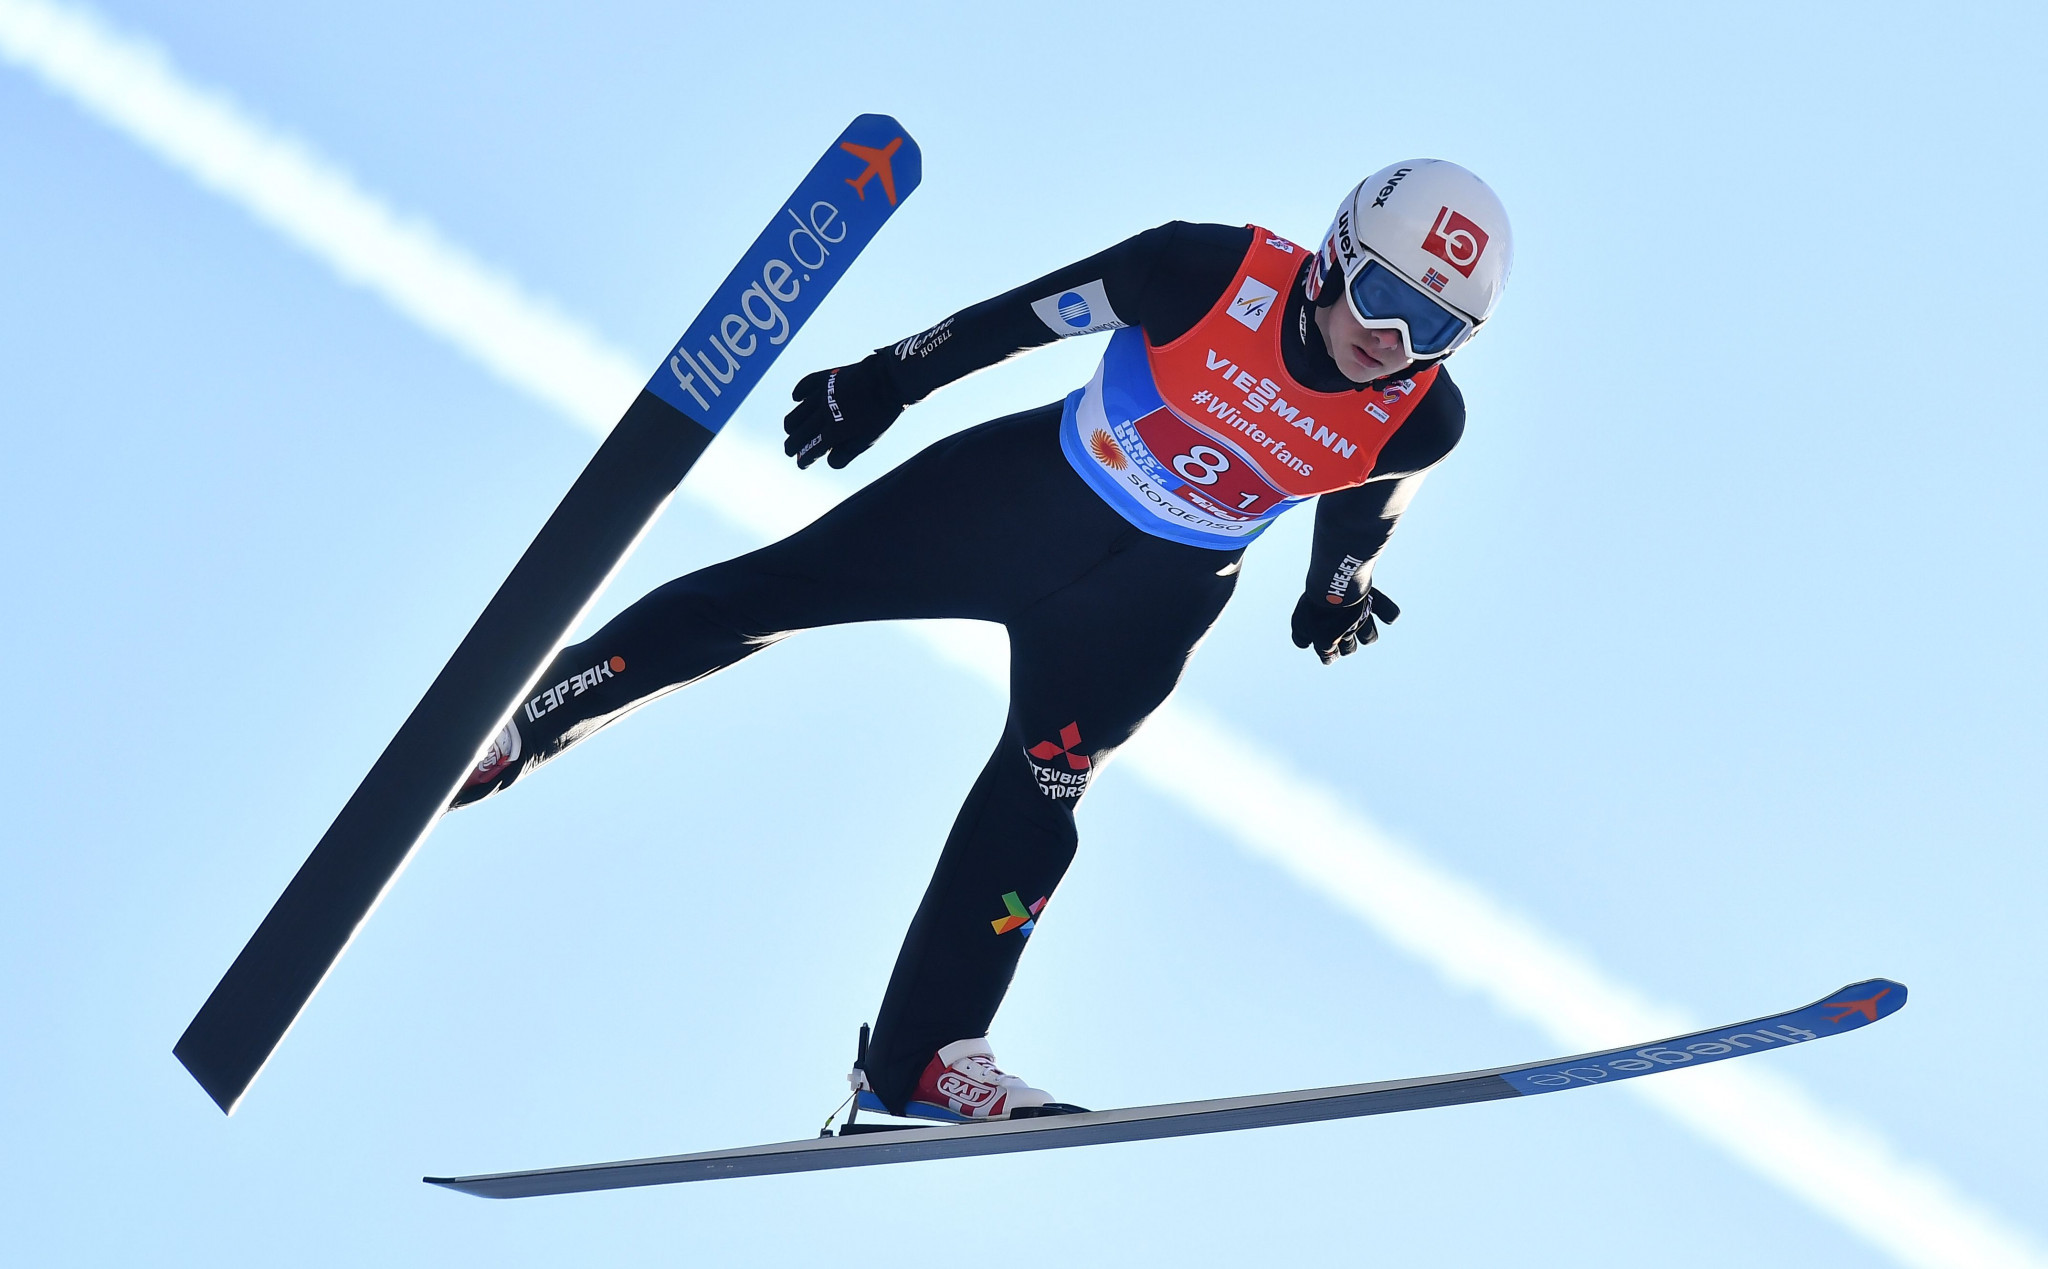 Granerud claims fourth straight Ski Jumping World Cup victory